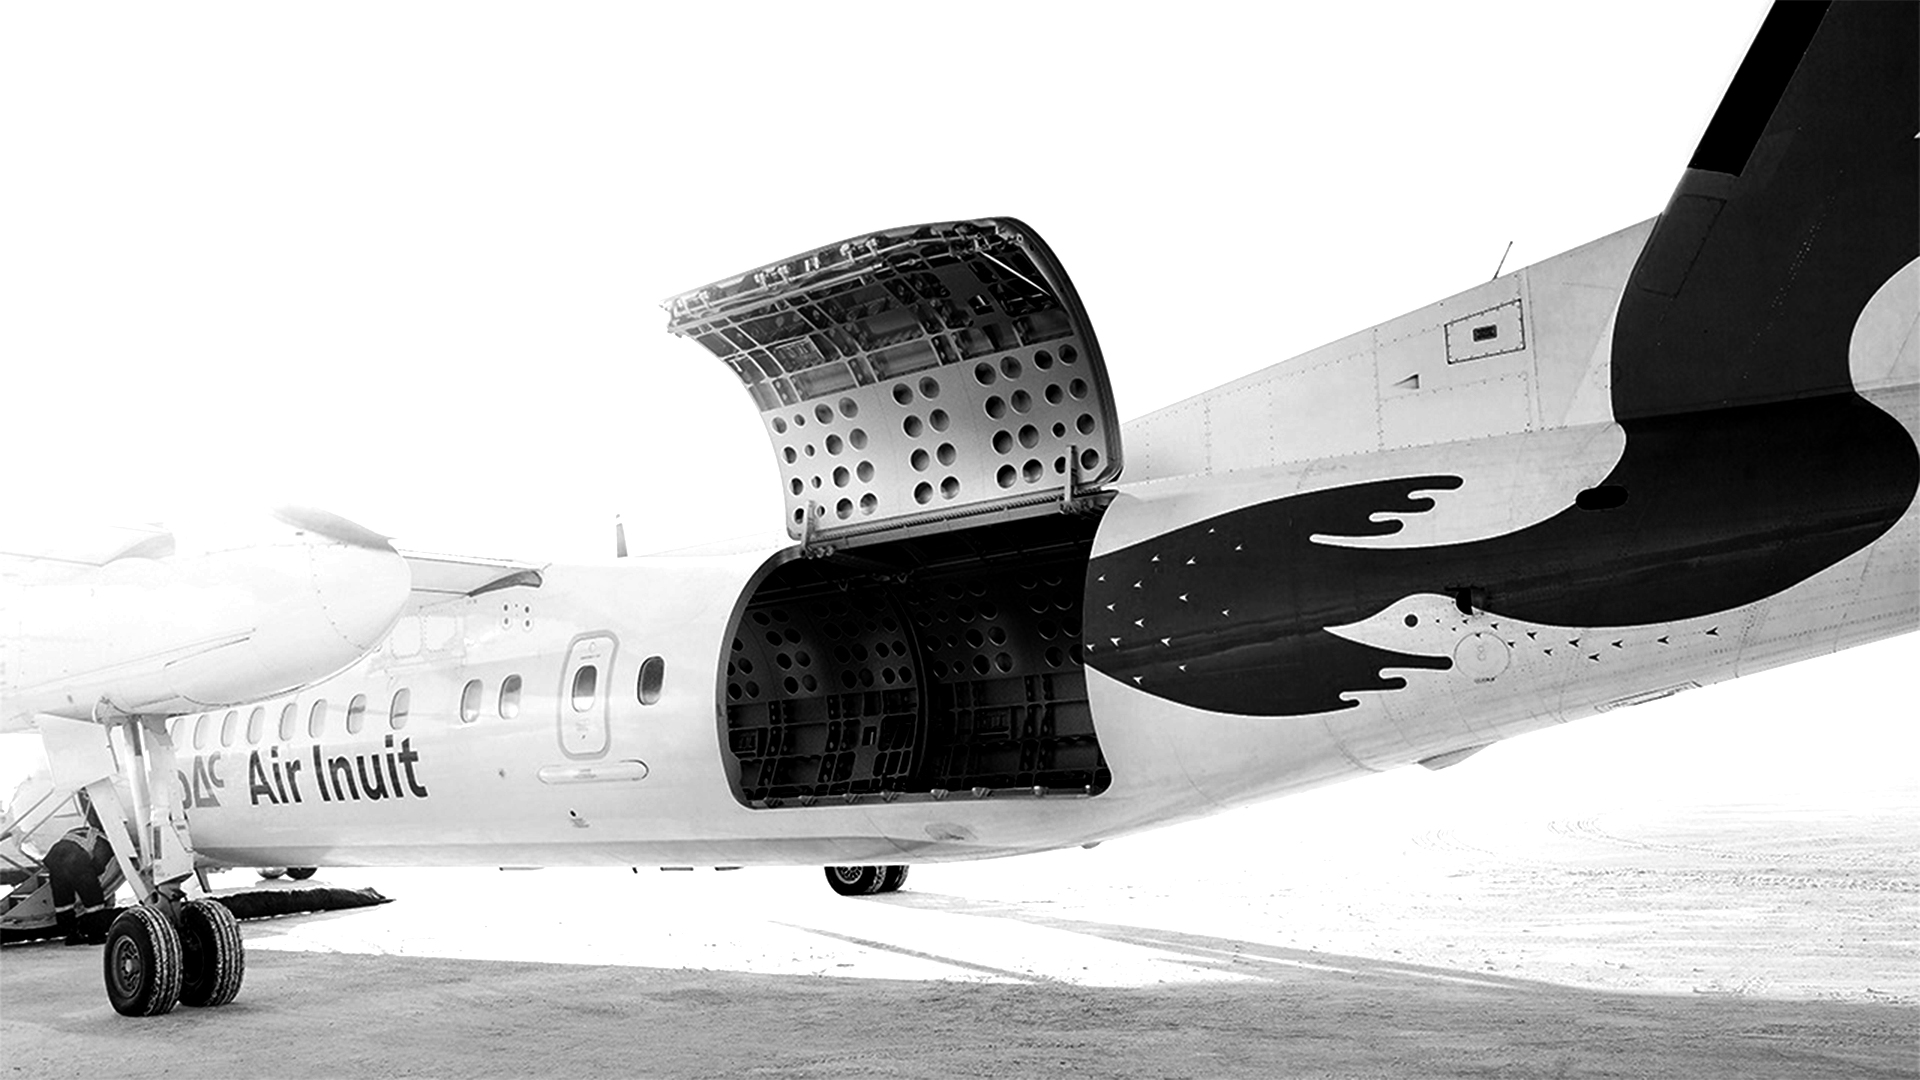 The DHC-8-300 full freight conversion